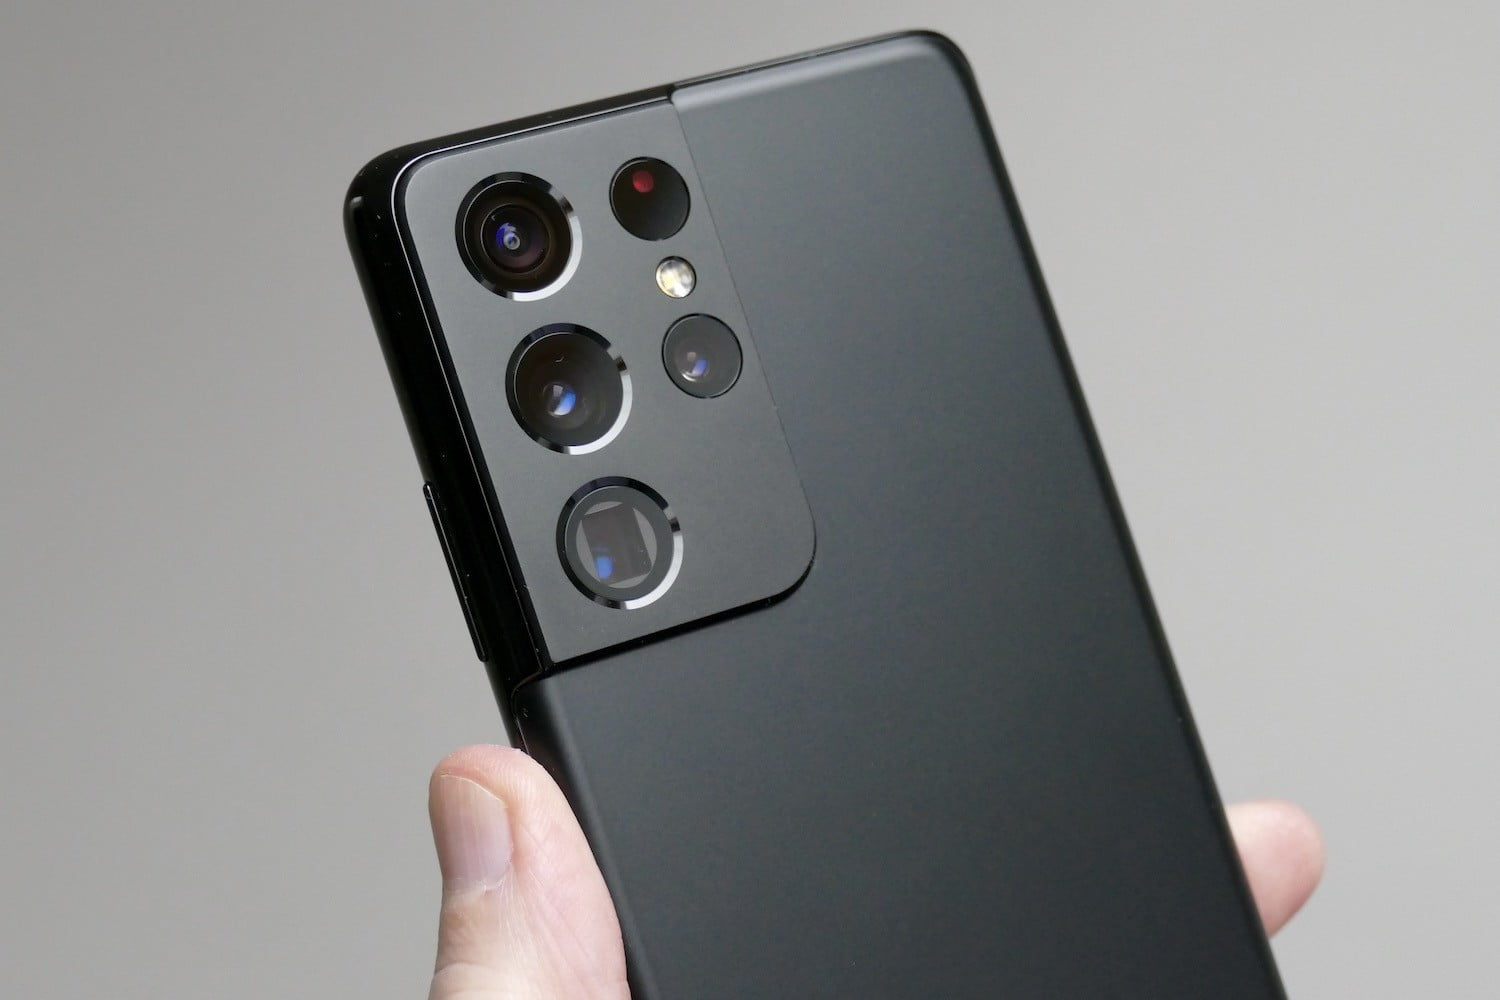 Top 6 Phones With Best Cameras In Us - Latest 2021